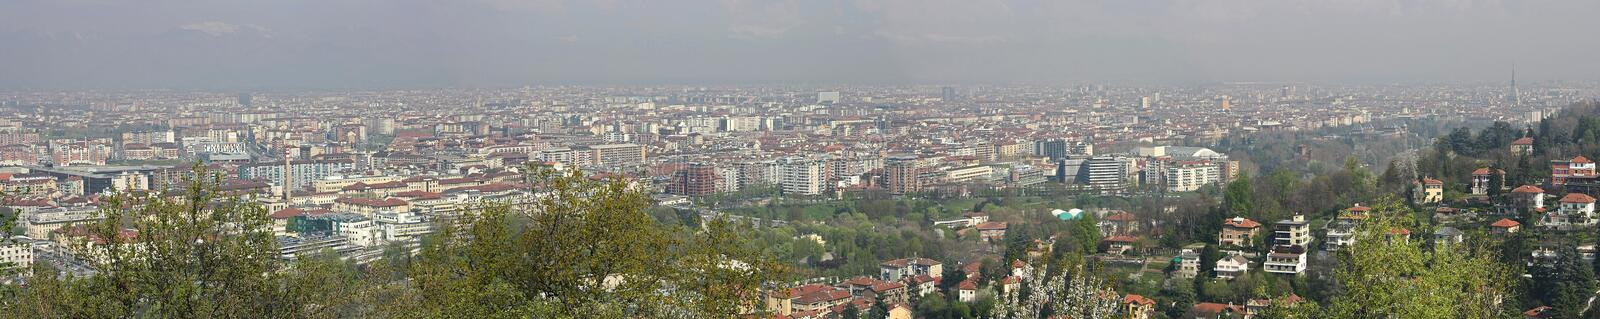 Download Turin panorama 4 stock image. Image of panoramic, landscape - 8863929